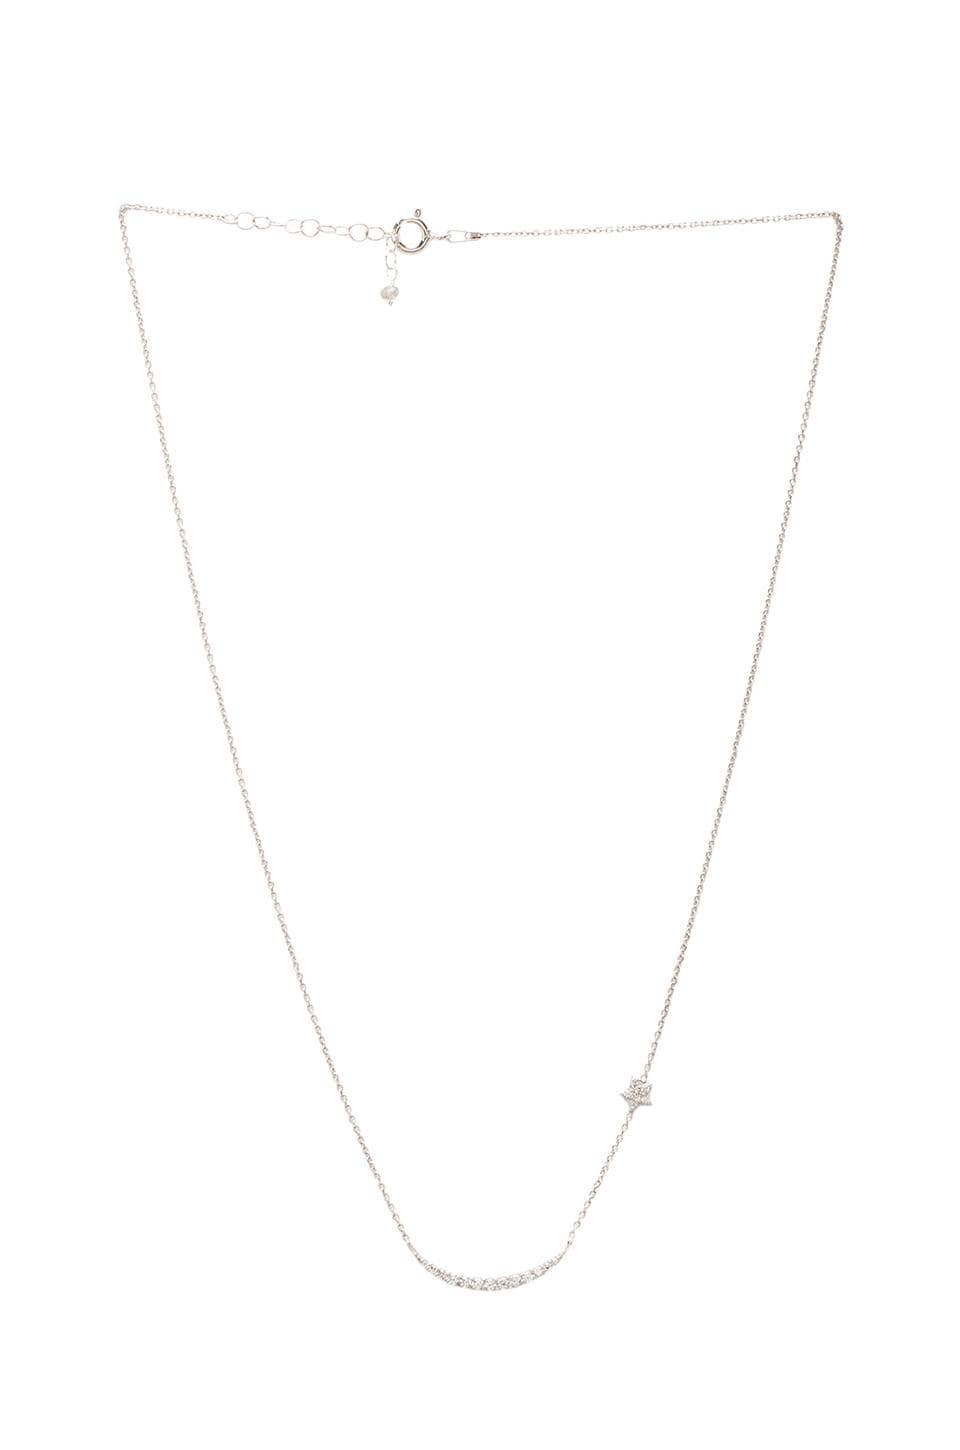 Natalie B Jewelry Natalie B Ottoman Moon and Star Necklace in Silver